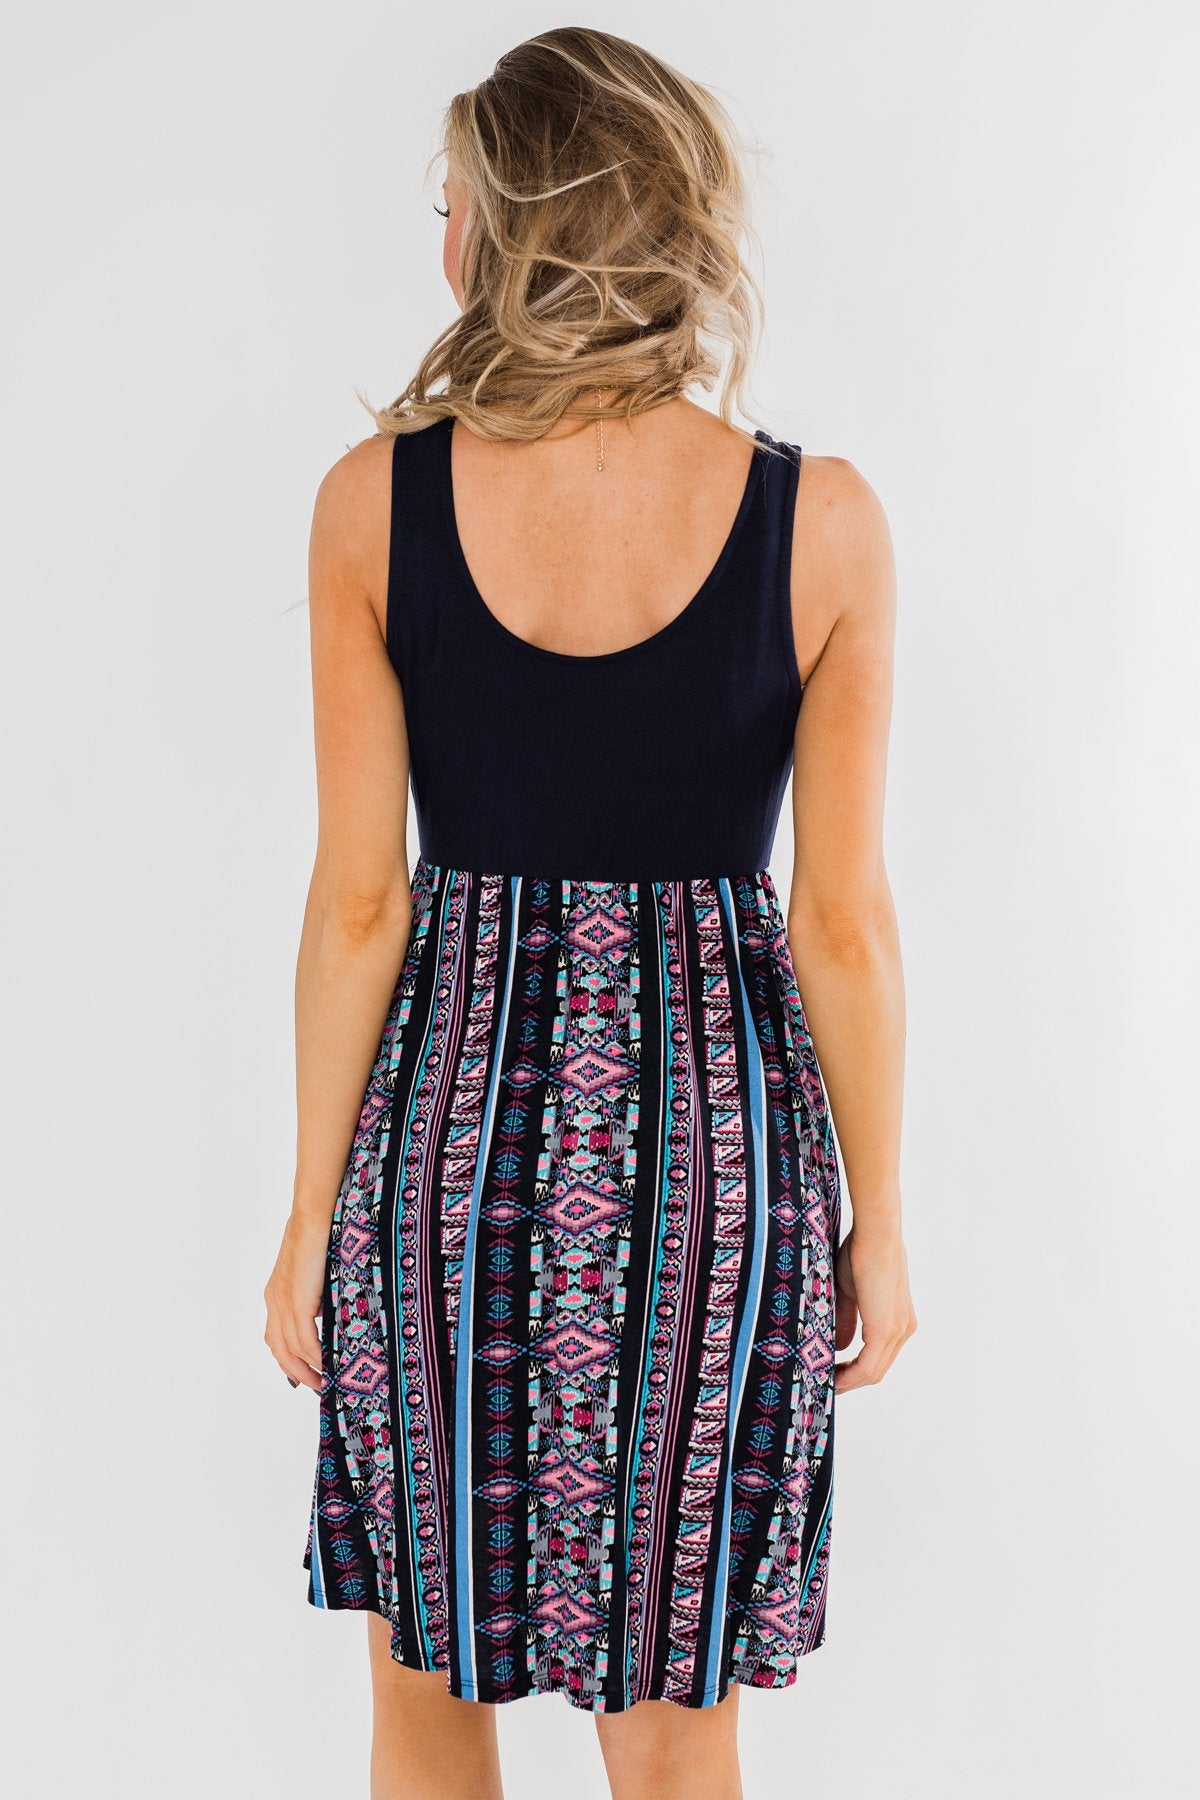 More Of You Aztec Dress- Navy